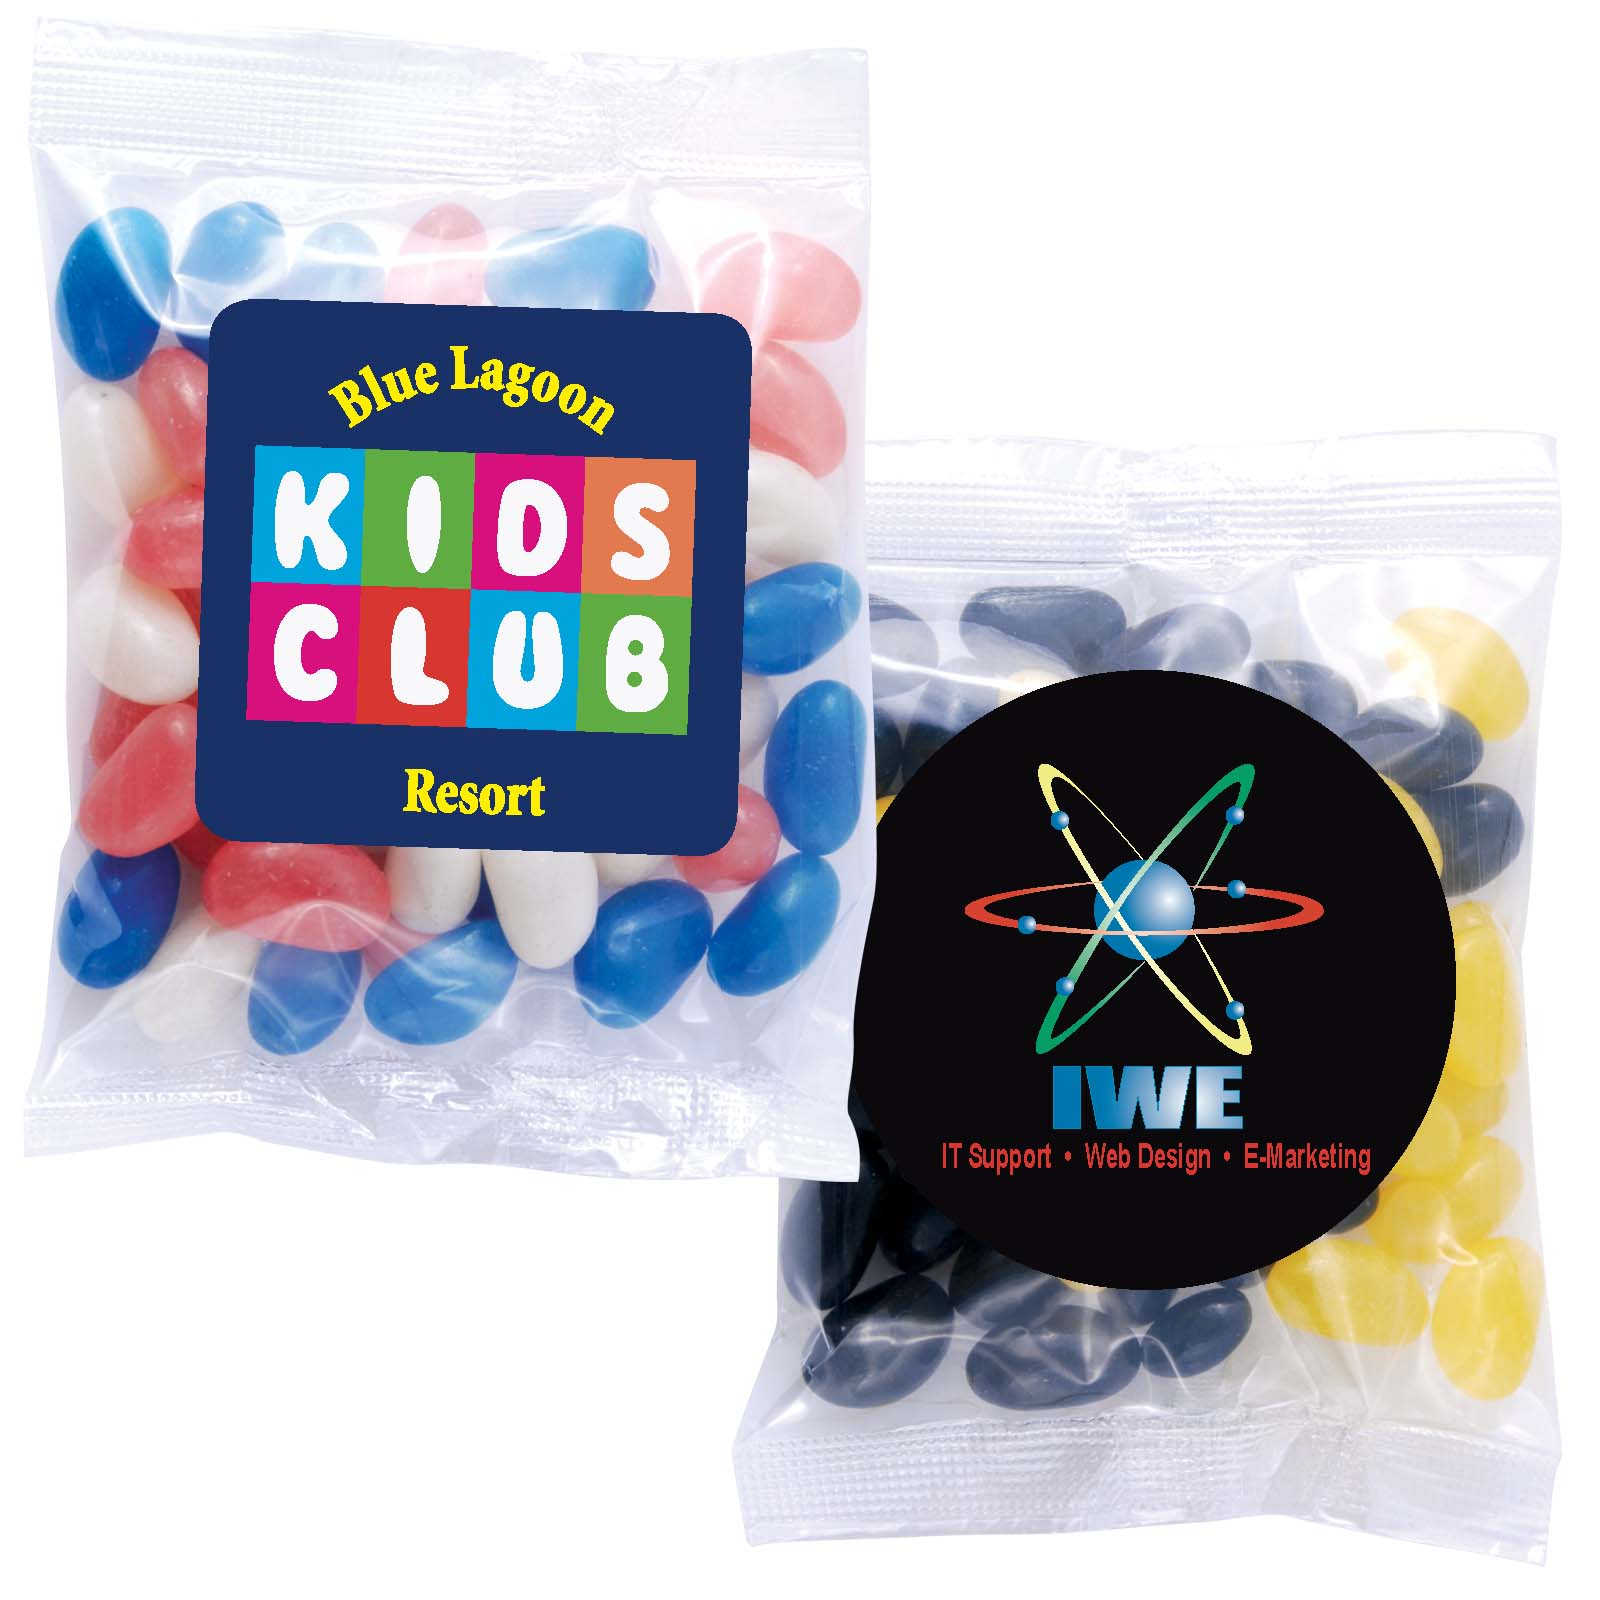 Corporate Colour Mini Jelly Beans in 60 Gram Cello Bag - Includes a full colour logo, From $0.84